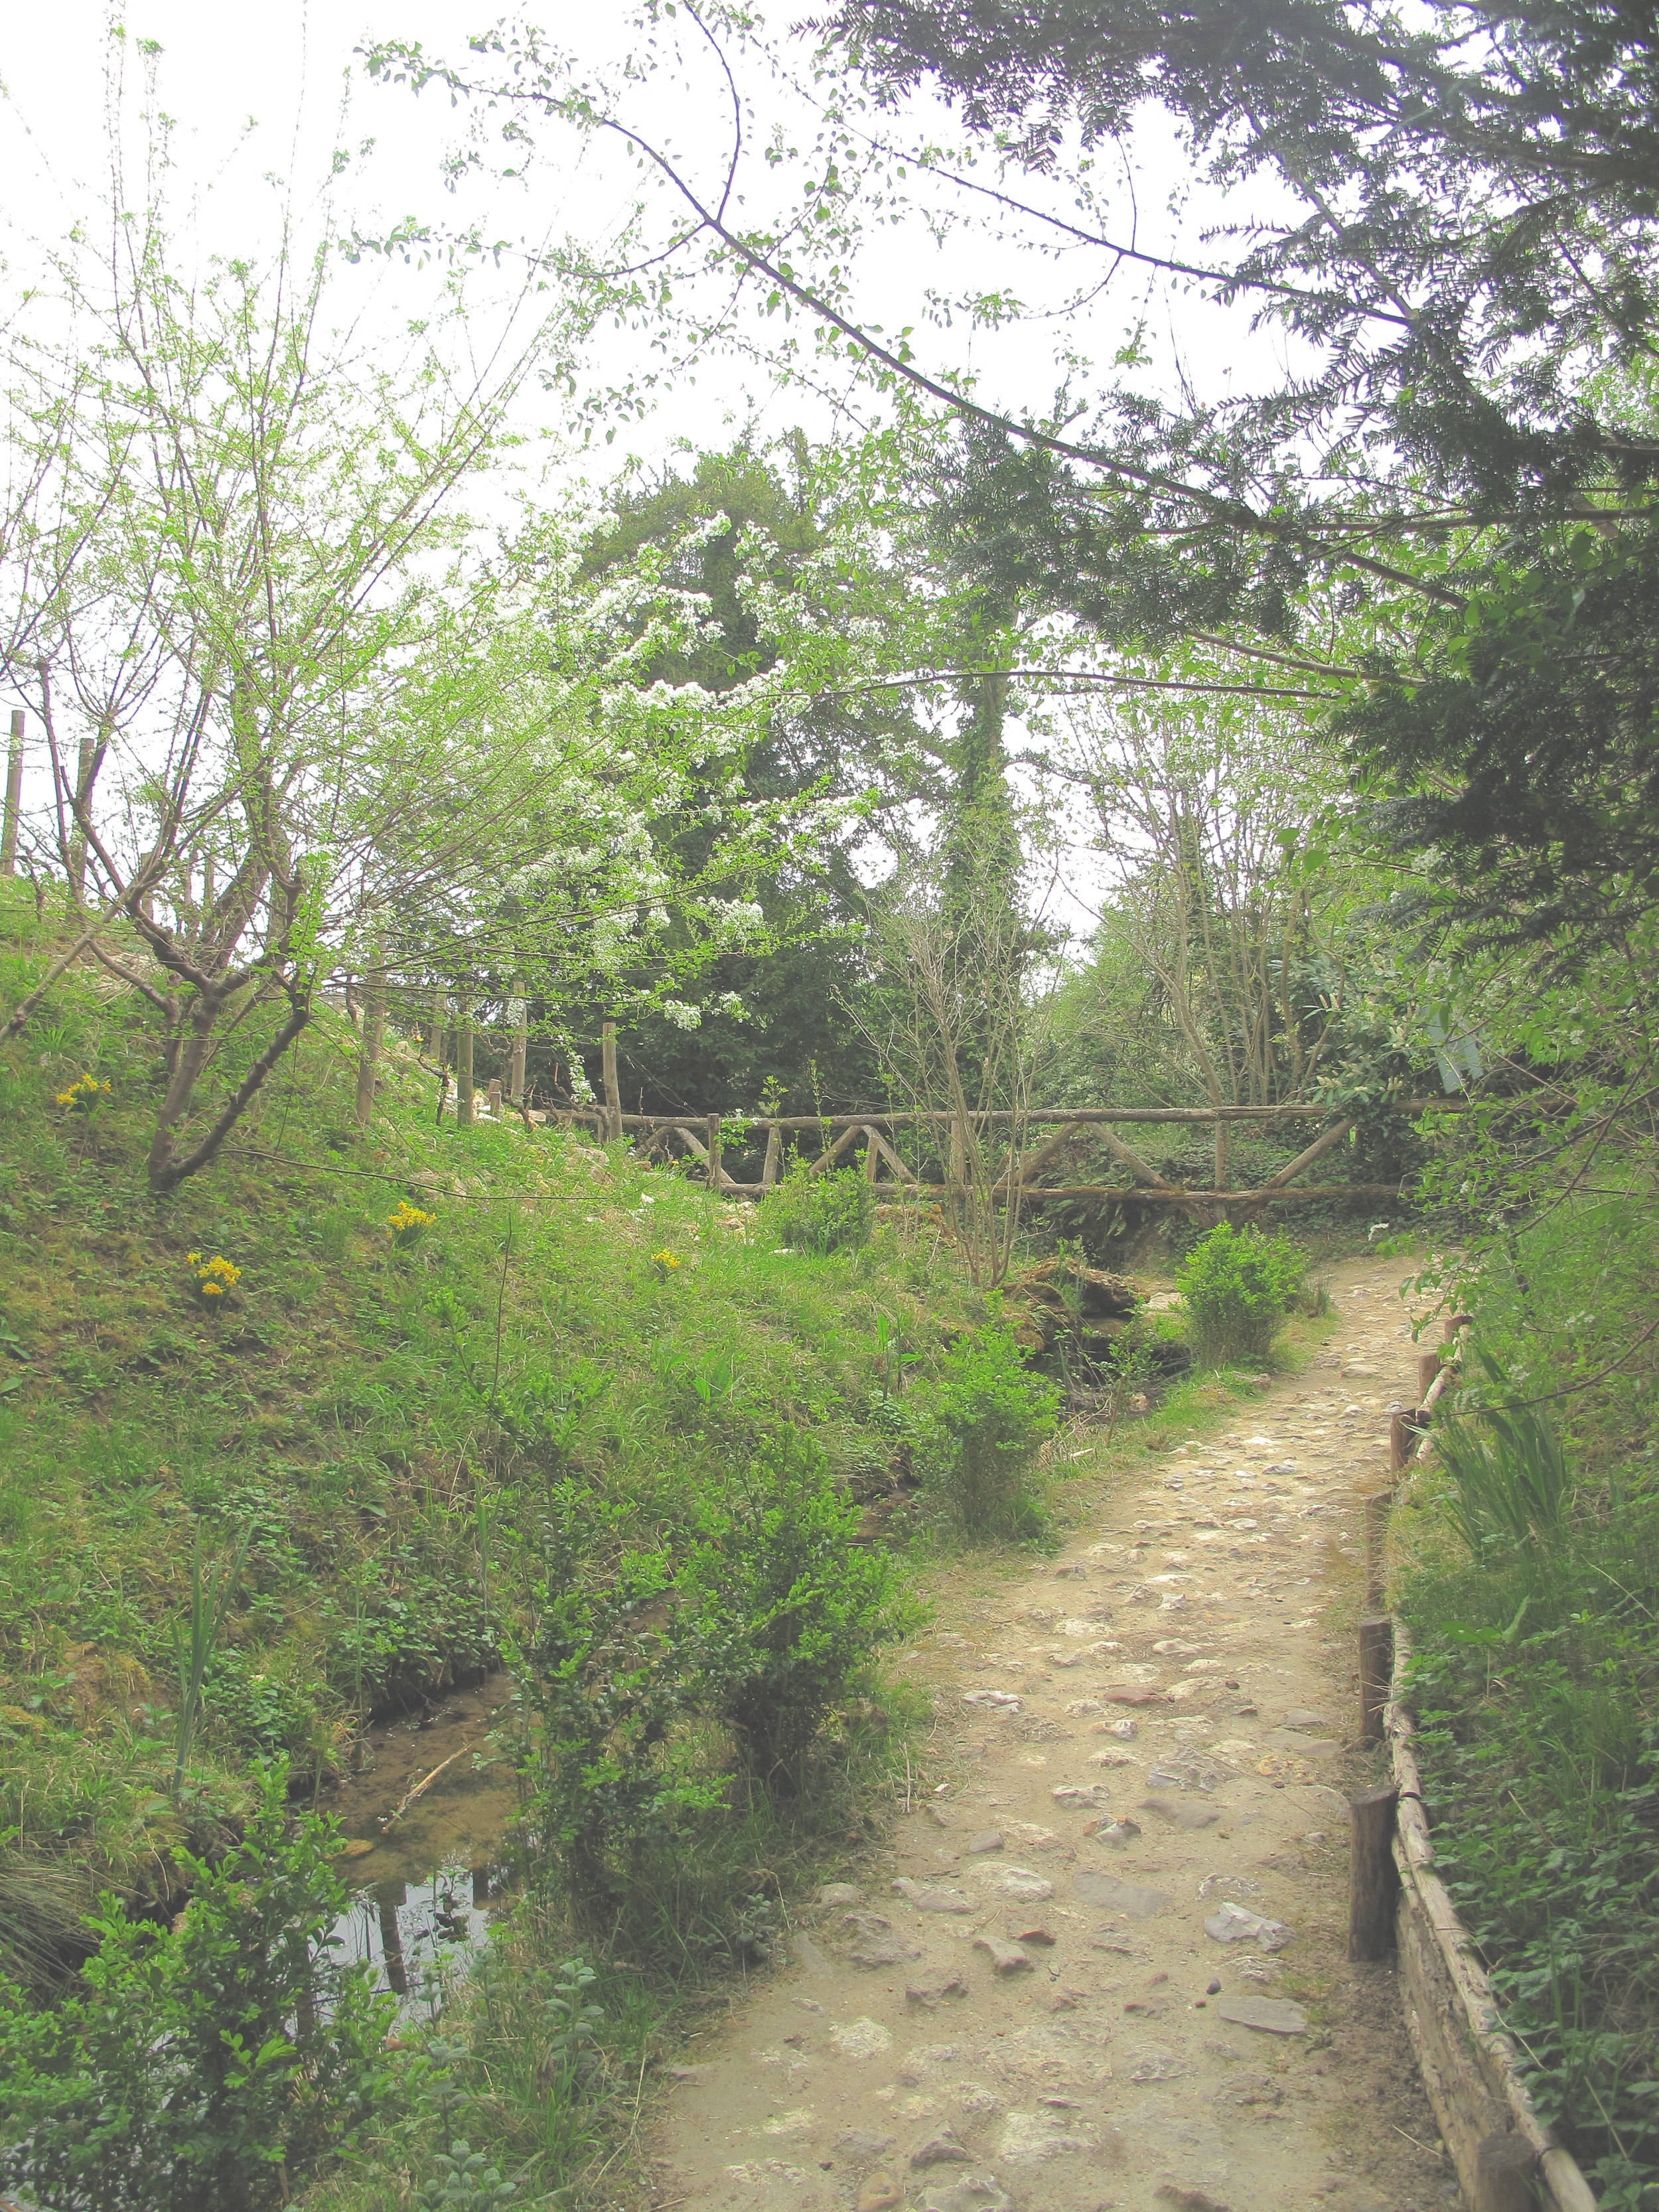 The paths and grottos of Marie Antoinette's English garden